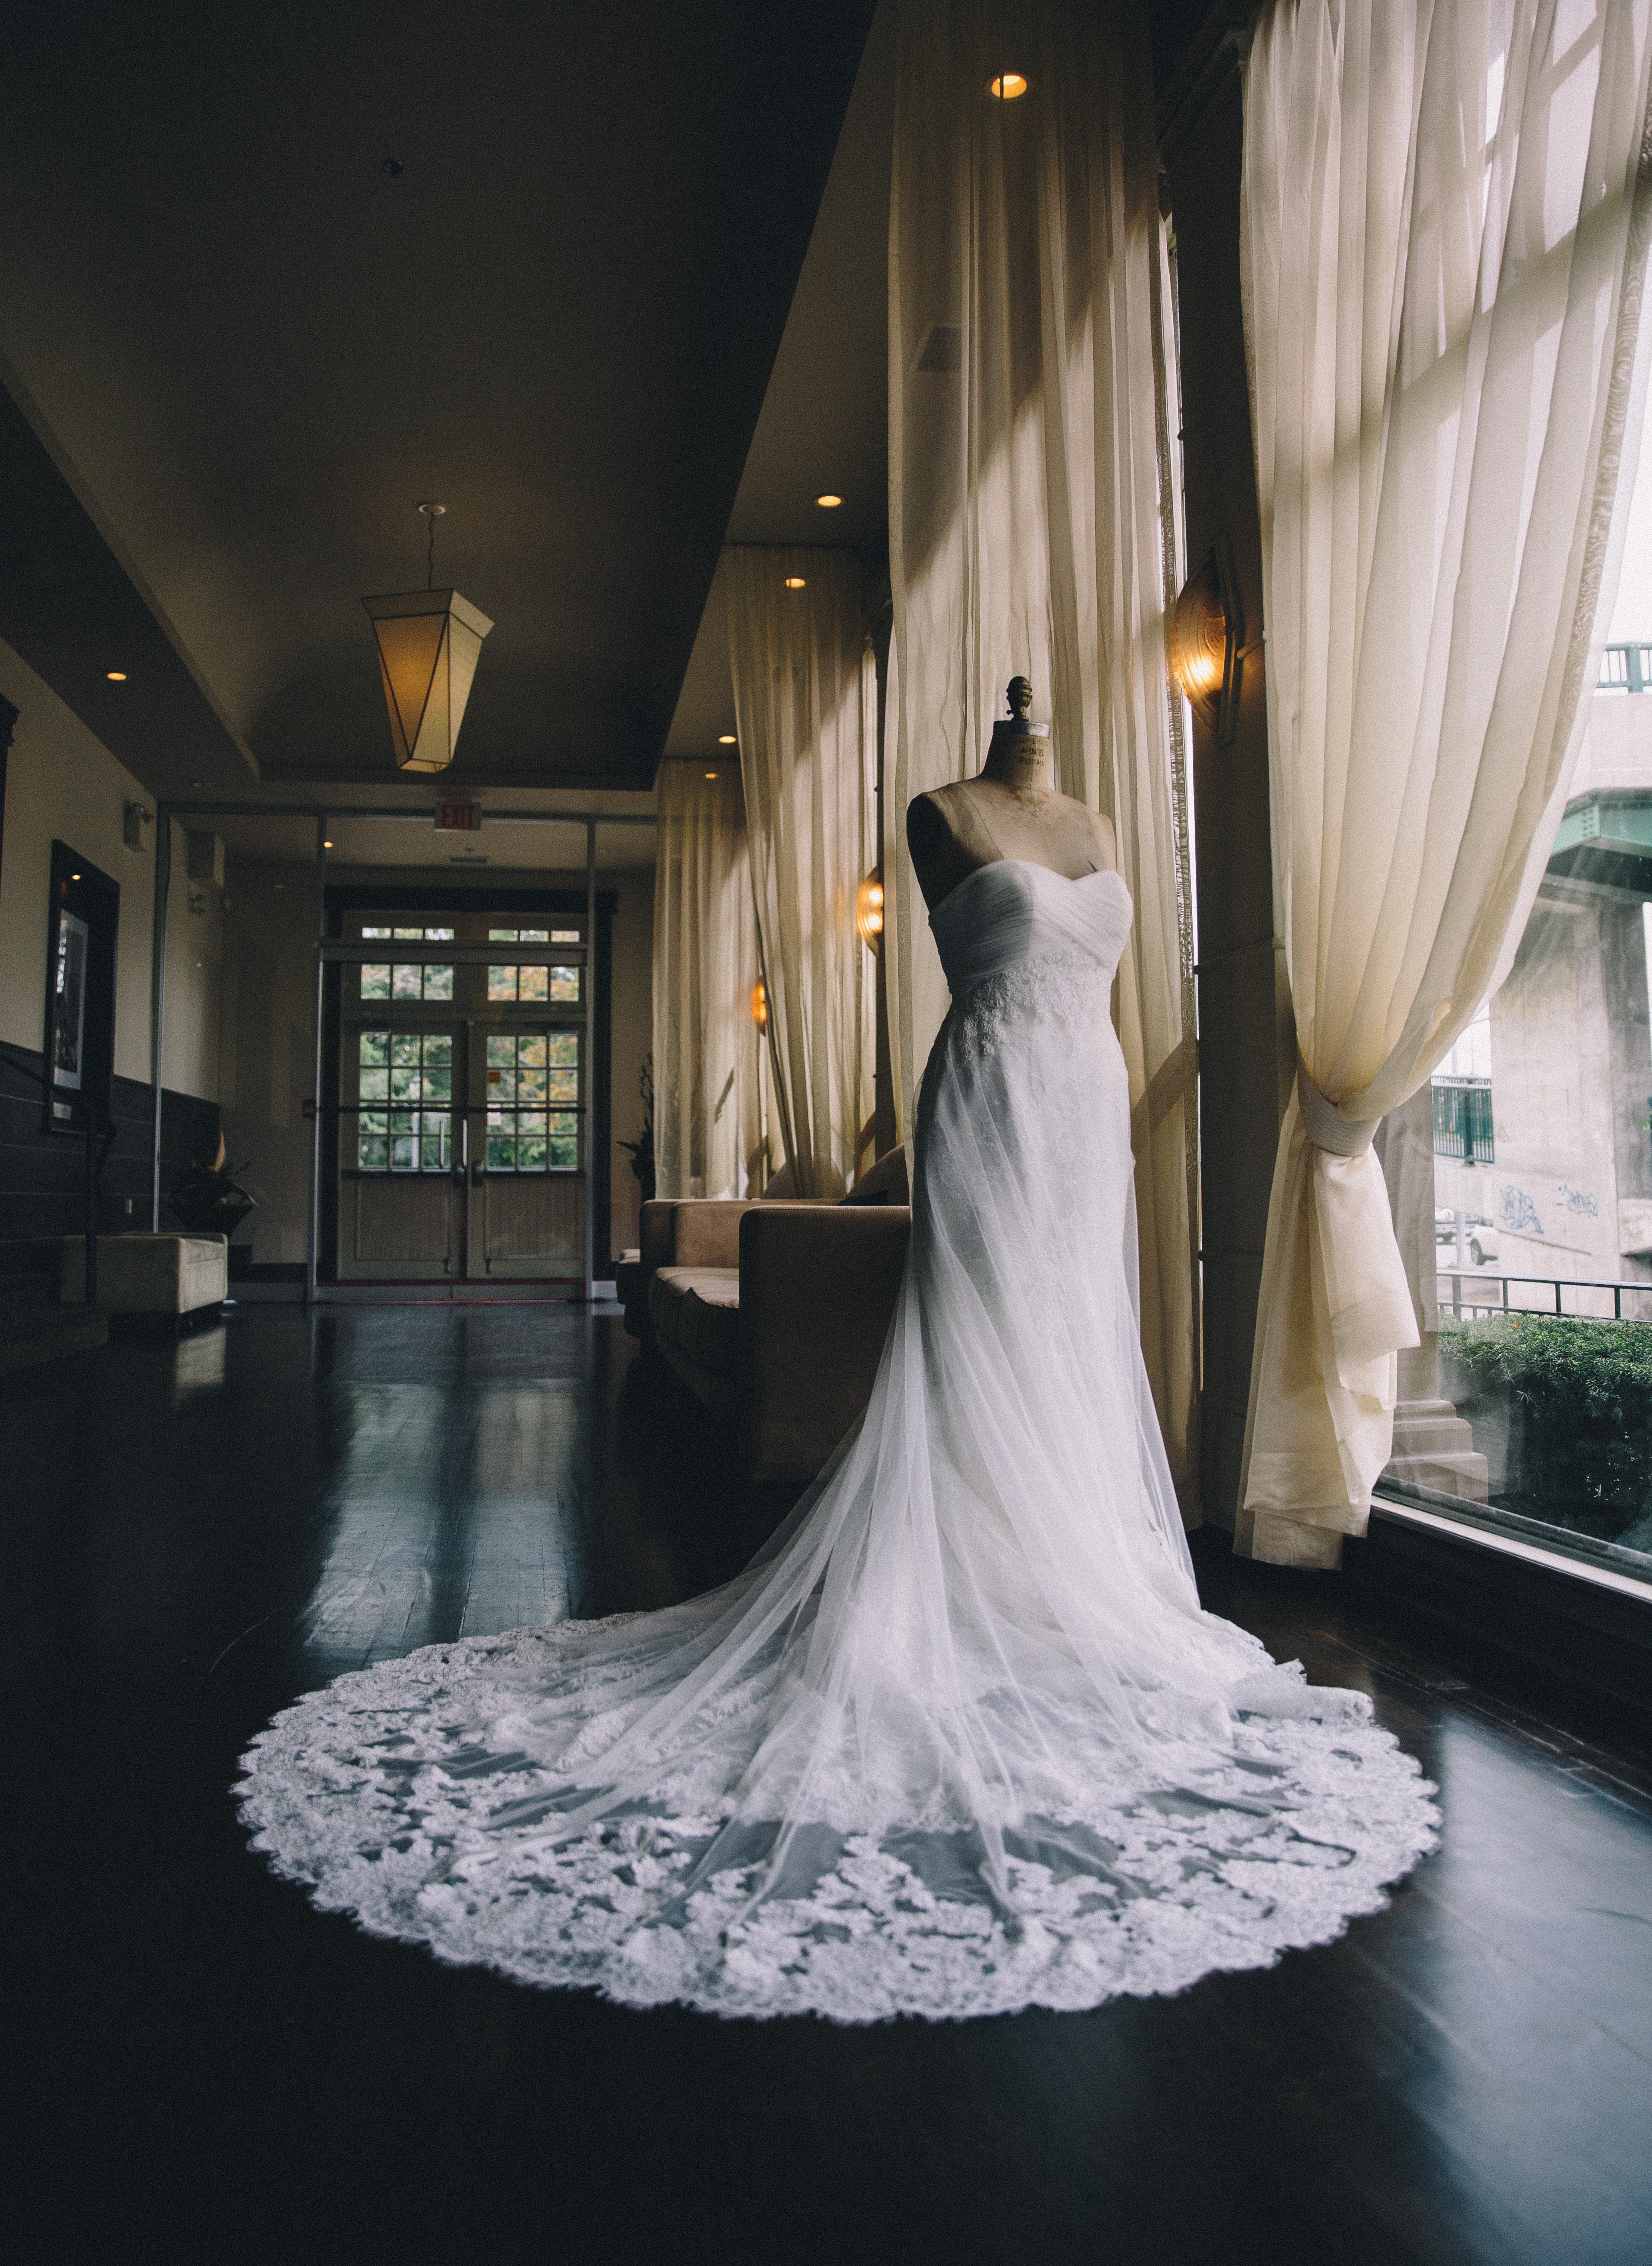 Lace sweetheart wedding gown on mannequin at the Palais Royale in Toronto, Ontario